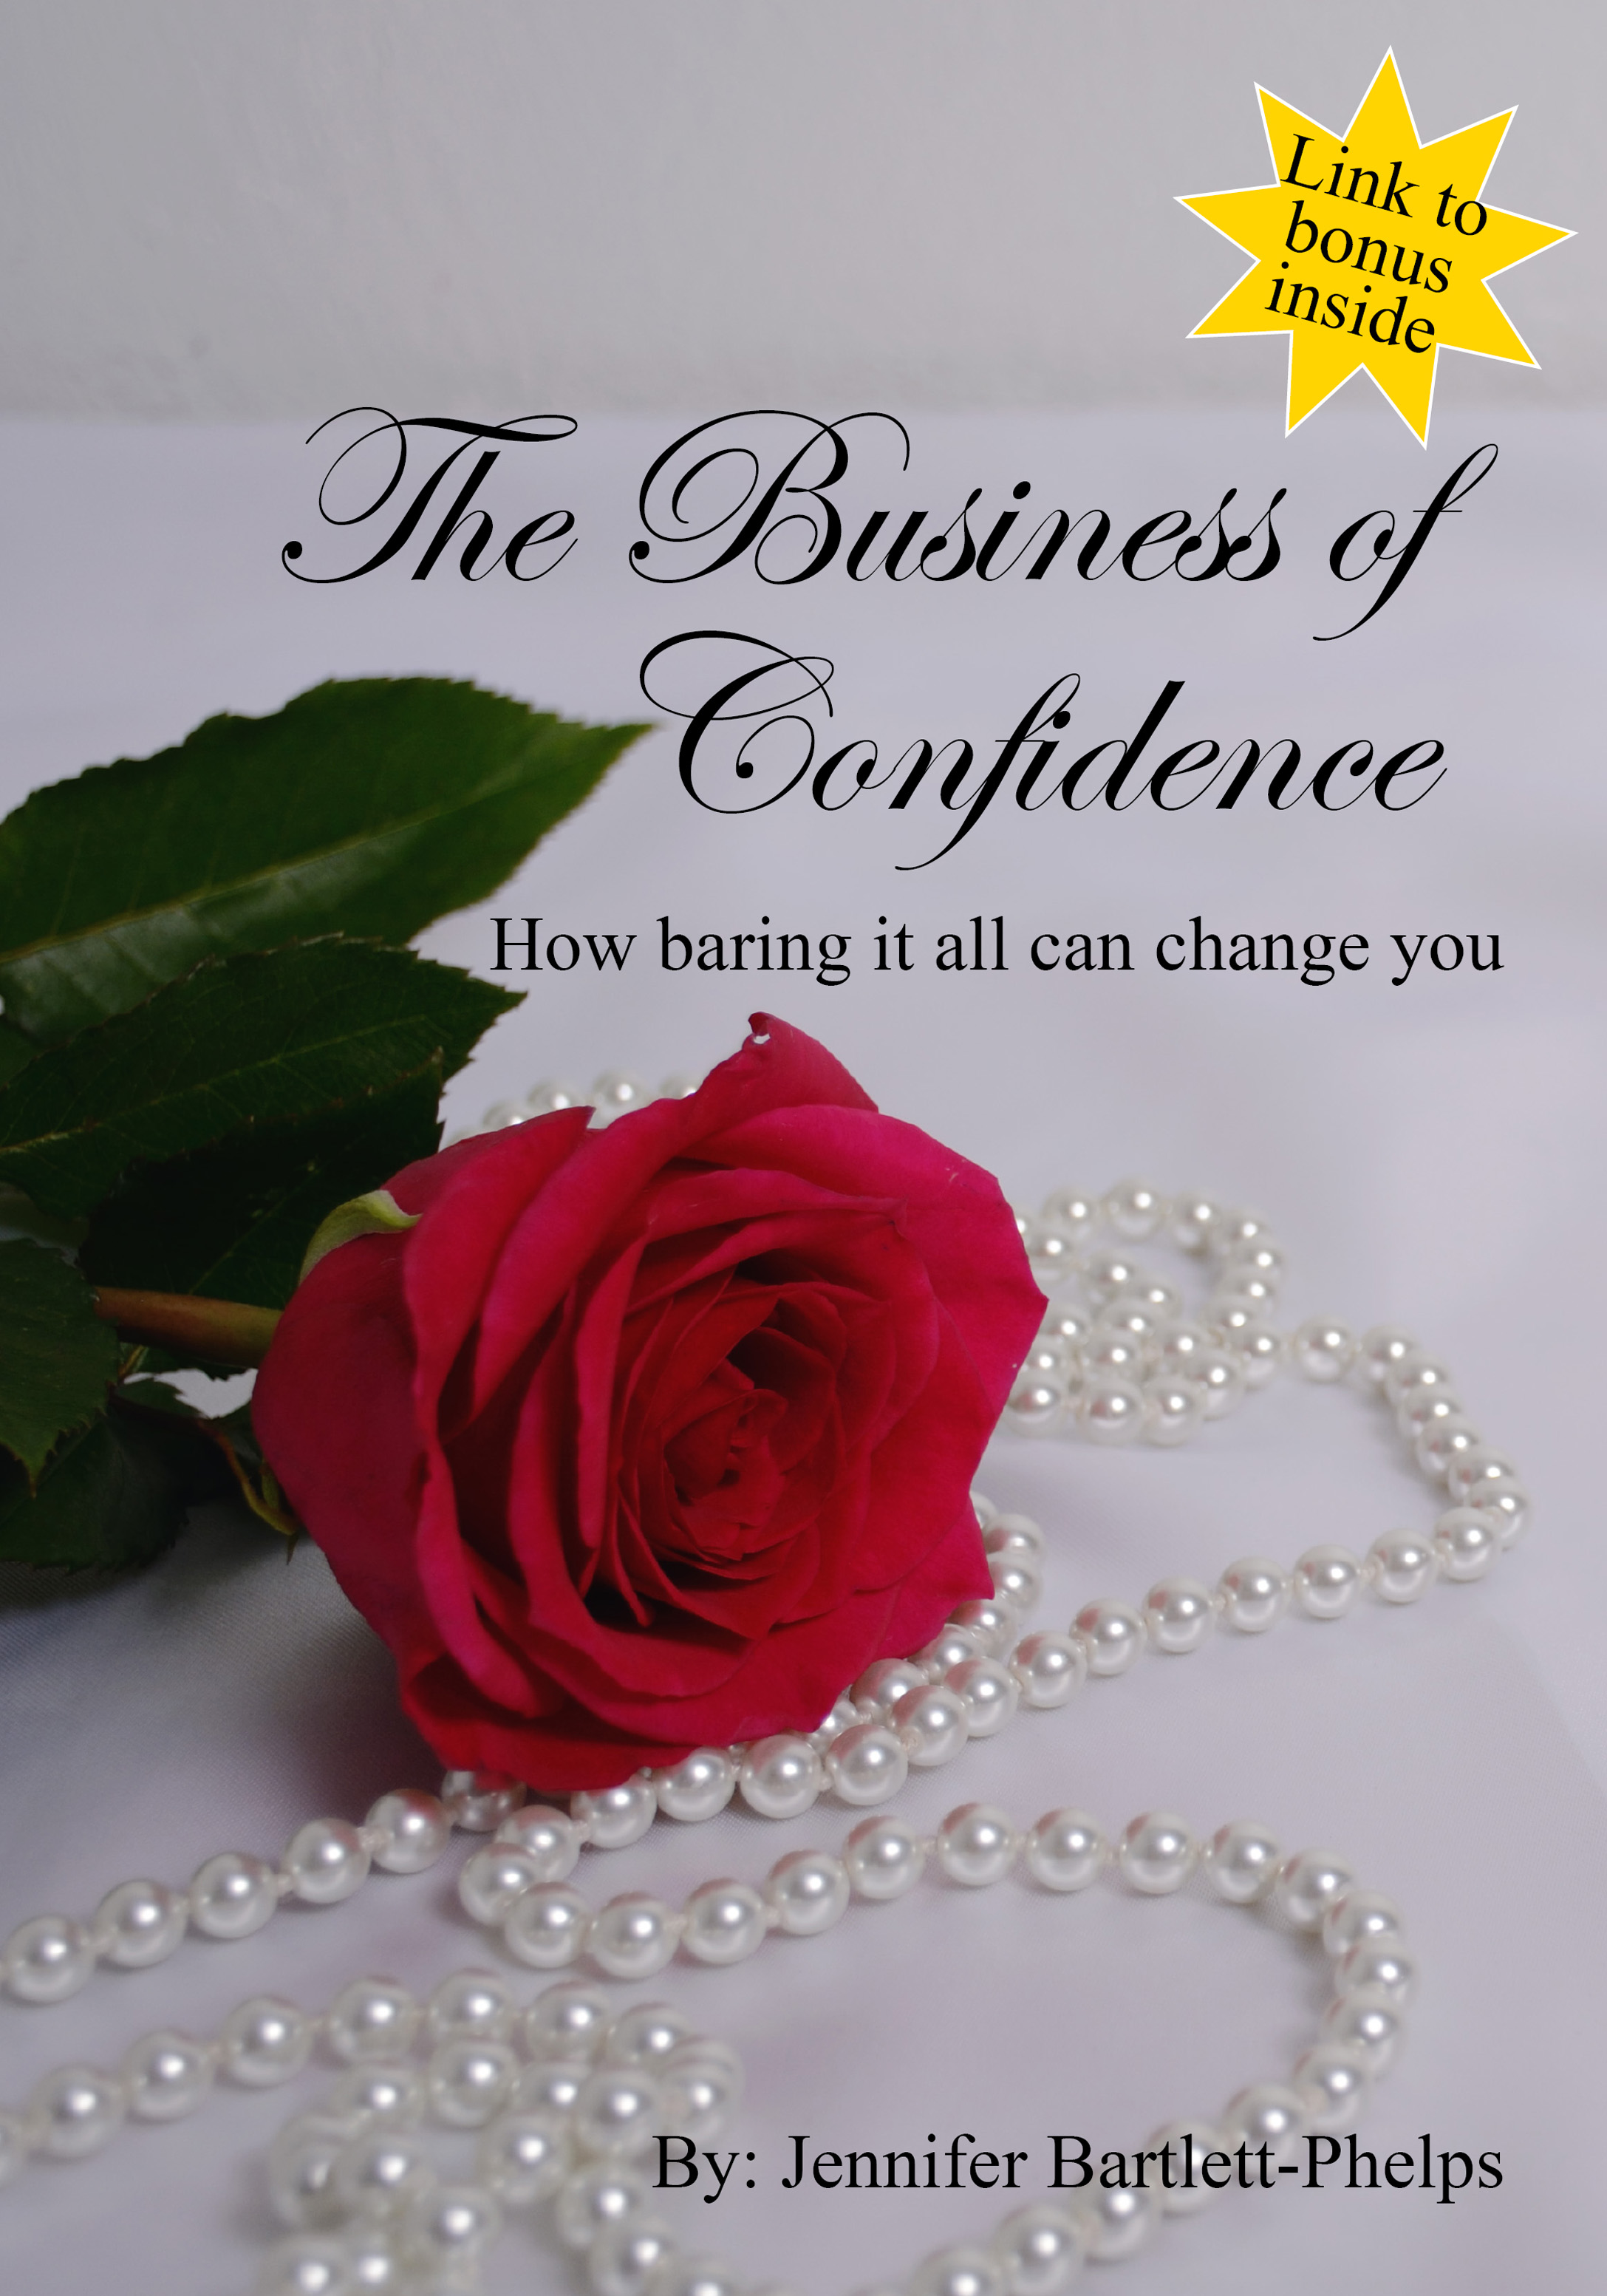 The Business of Confidence by Jennifer Bartlett-Phelps